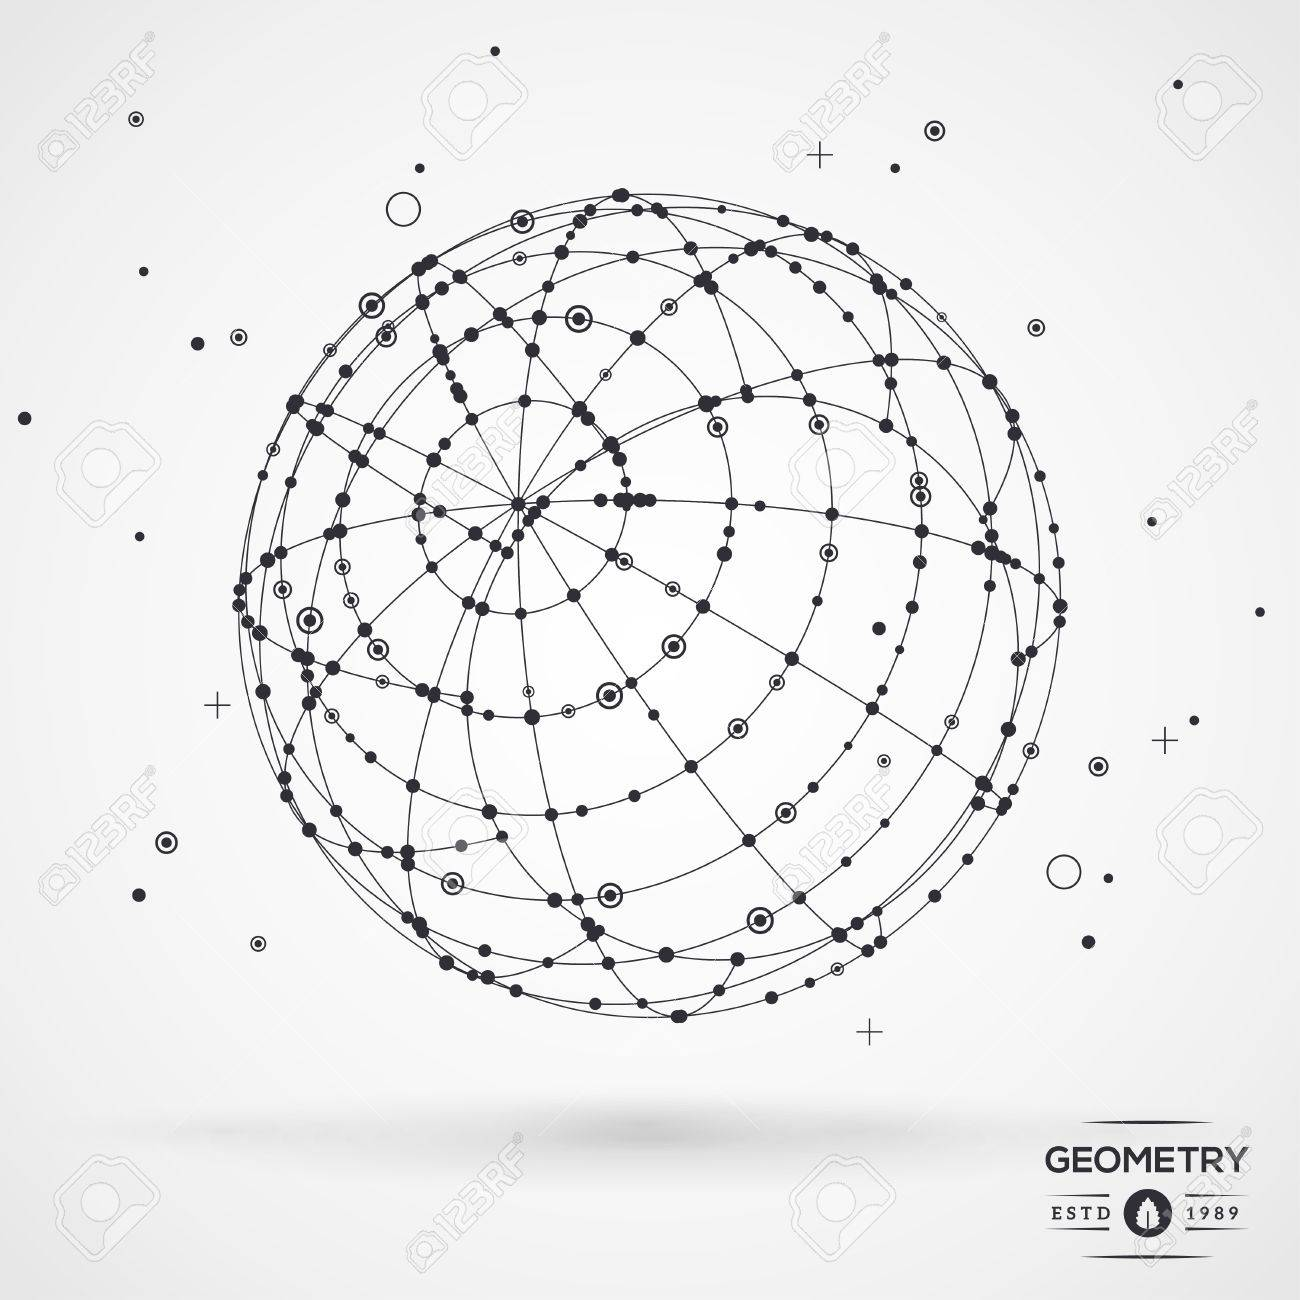 Sphere wireframe mesh with connected lines and dots connection